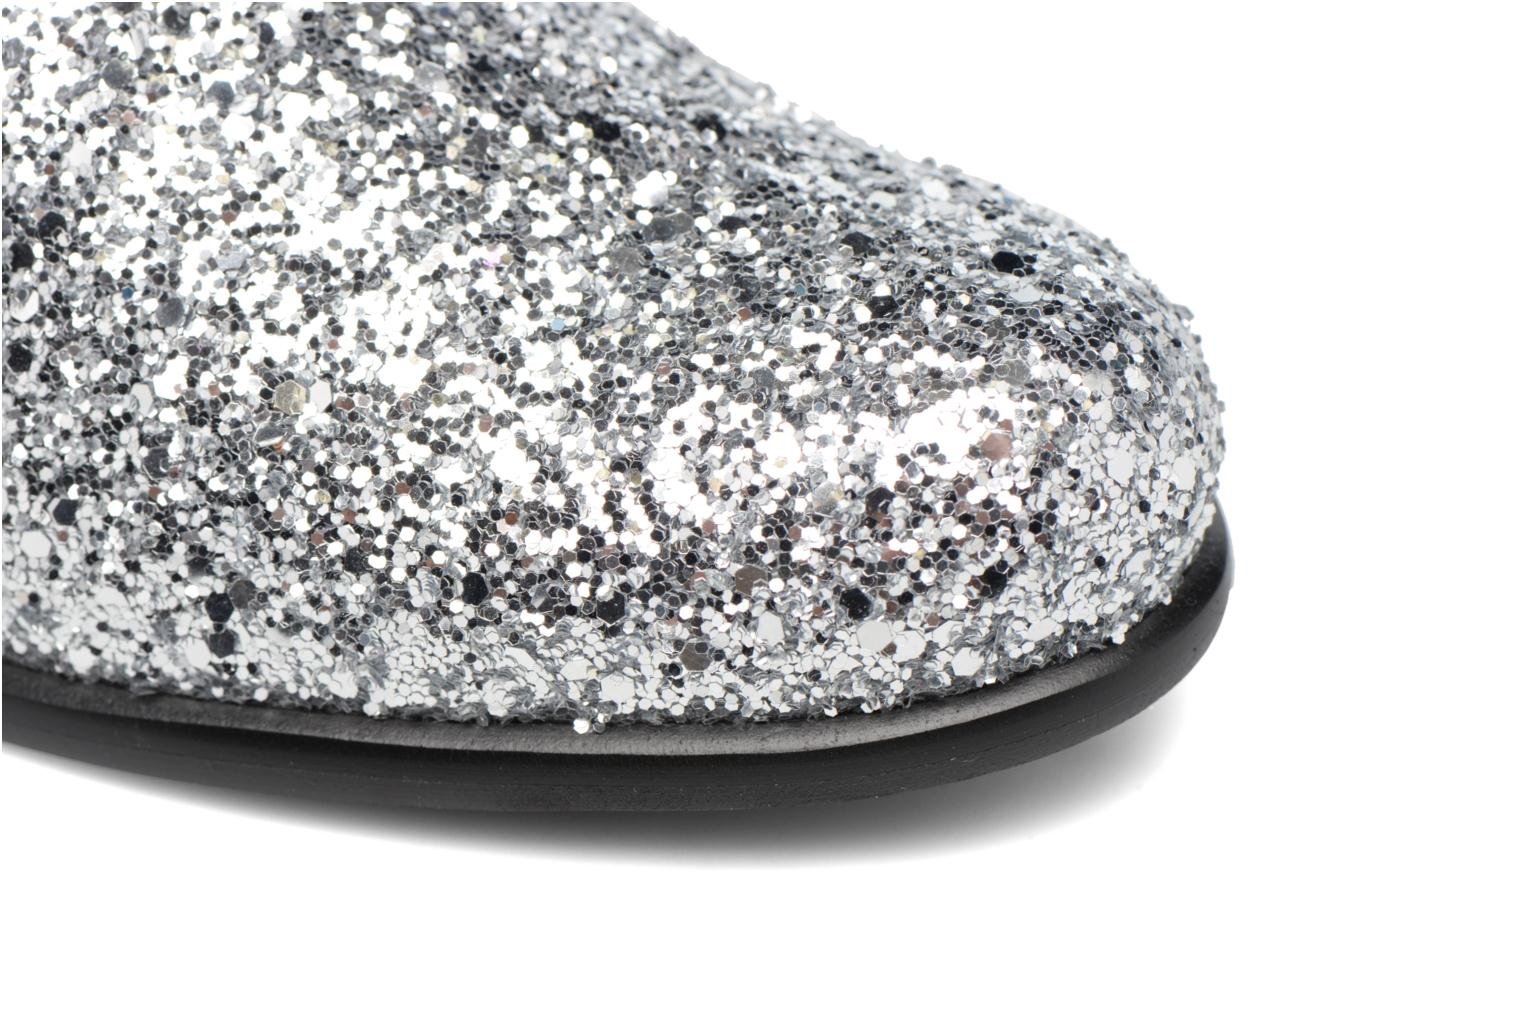 Winter Freak #7 Glitter Argent